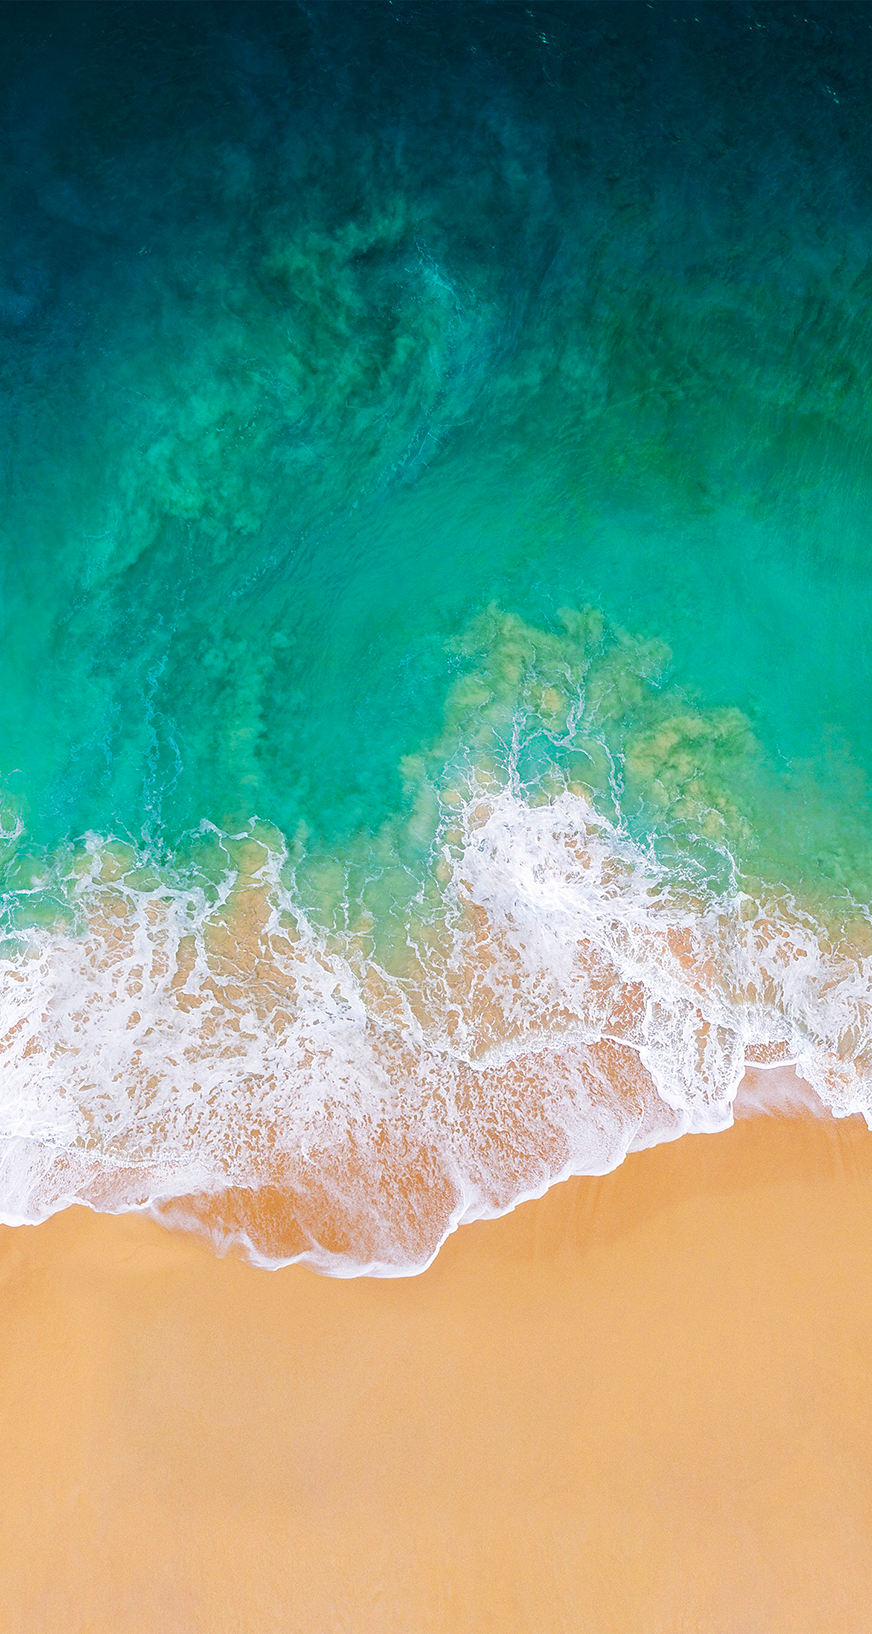 Sand And Surf Nature Photo Ocean Waves Ios 11 Wallpaper Iphone Wallpaper Ios Iphone Wallpaper Ios 11